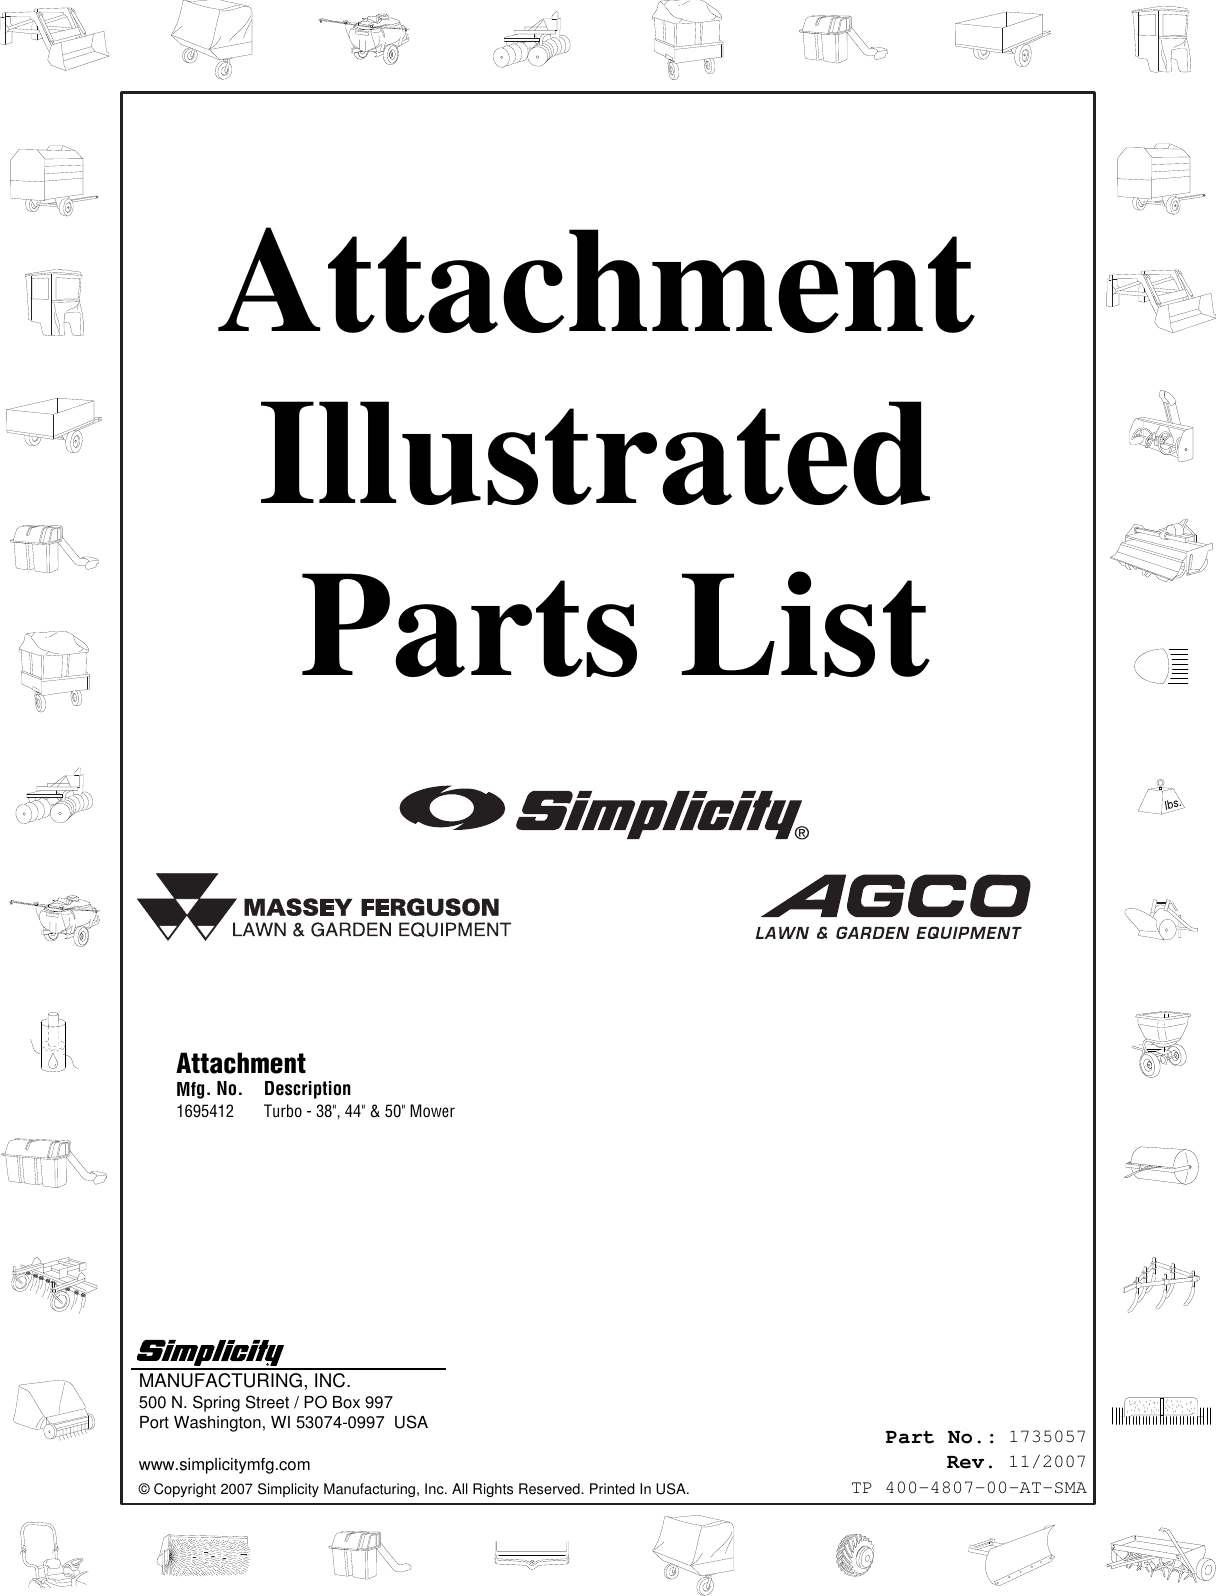 Snapper 4807 Users Manual Attachment Turbo 38, 44 & 50 Mower